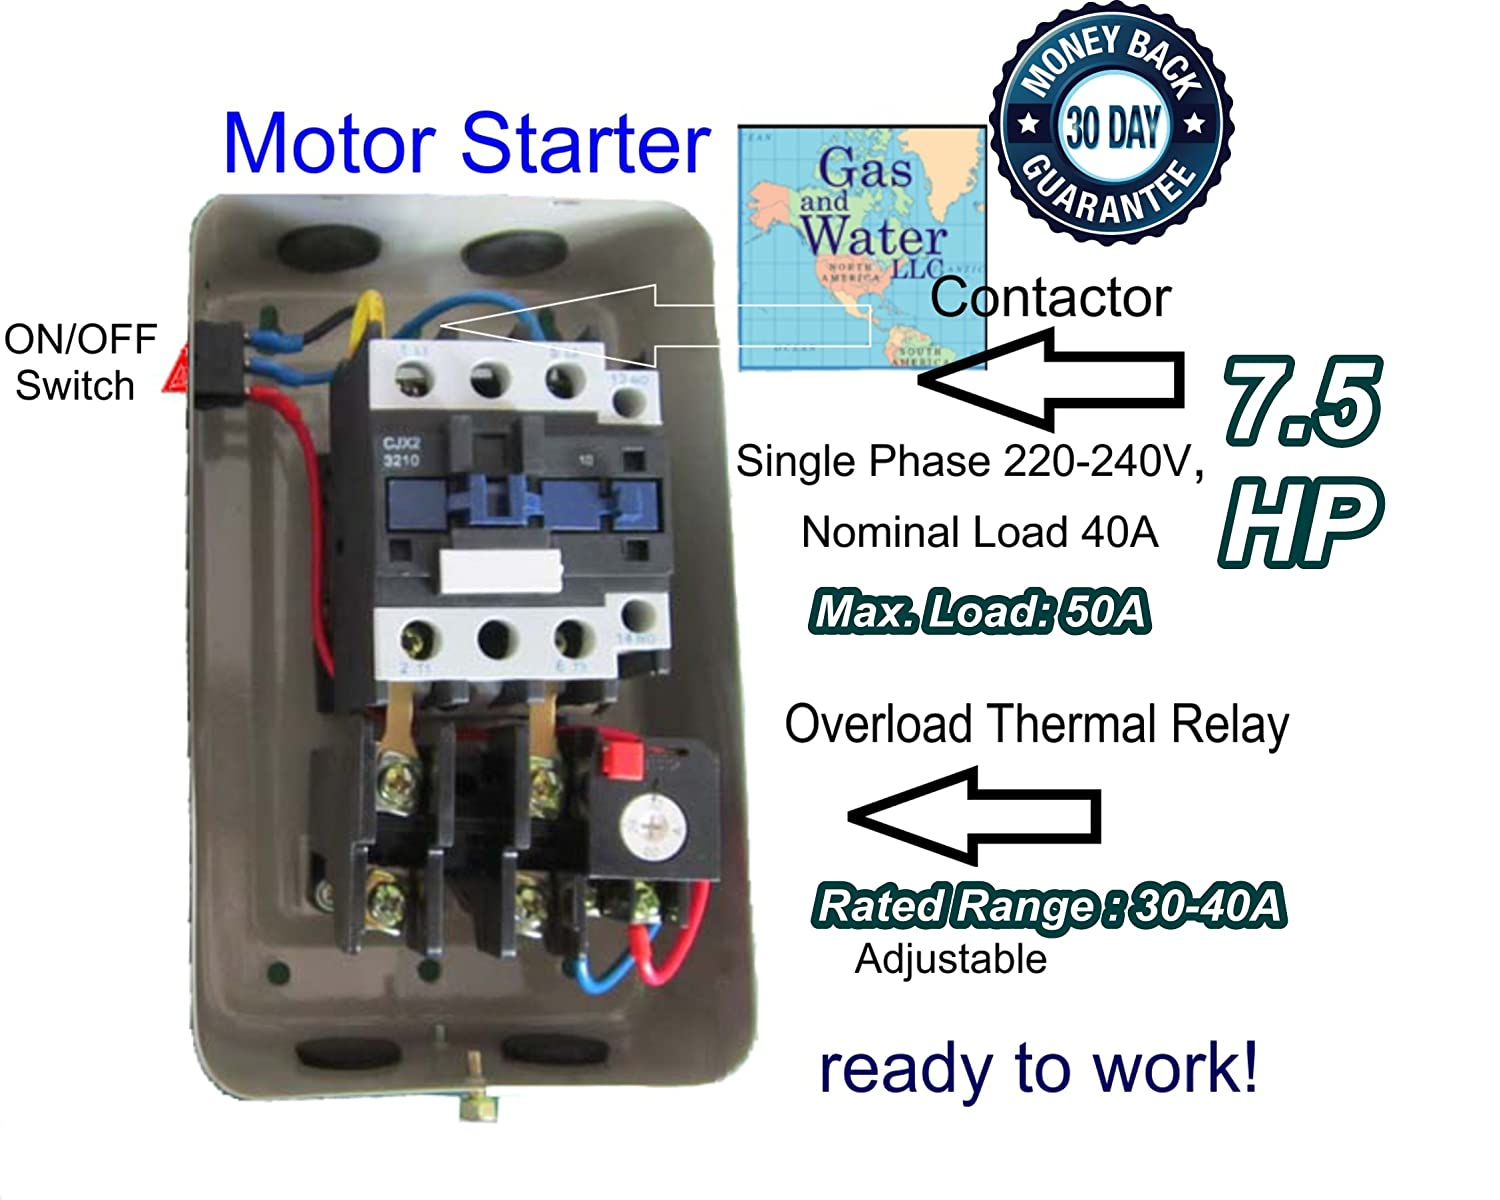 New Magnetic Motor Starter Control for electric motor 75hp 1ph 230V